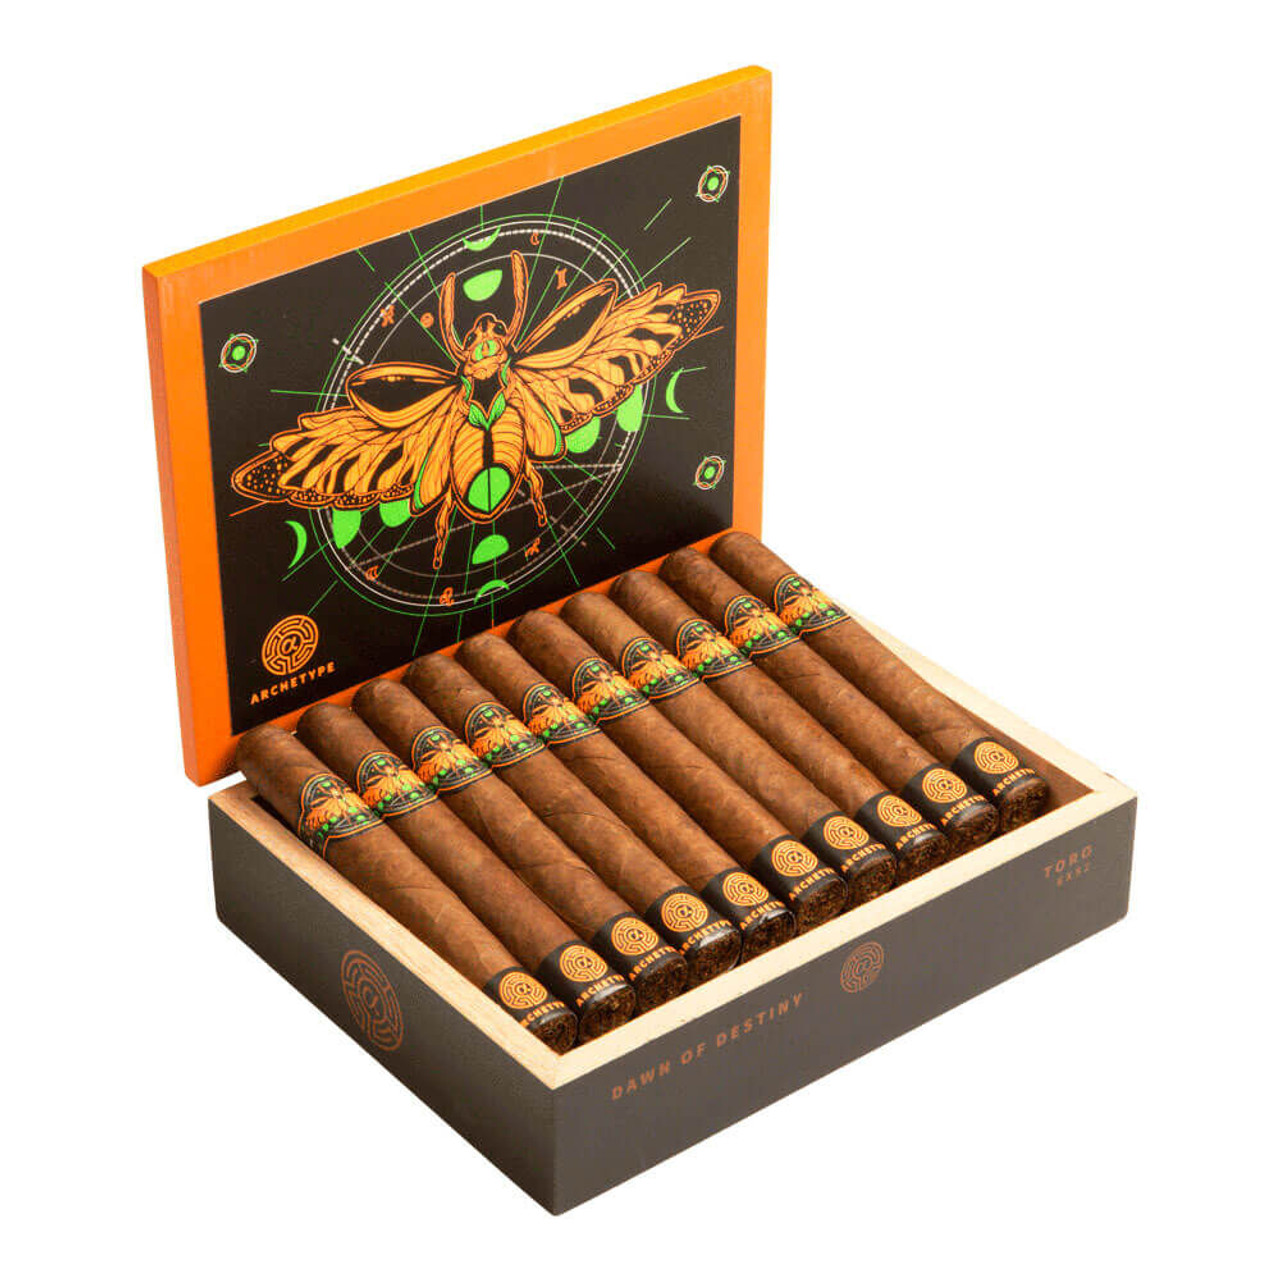 Archetype Dawn of Destiny Toro Cigars - 6 x 52 (Box of 20)